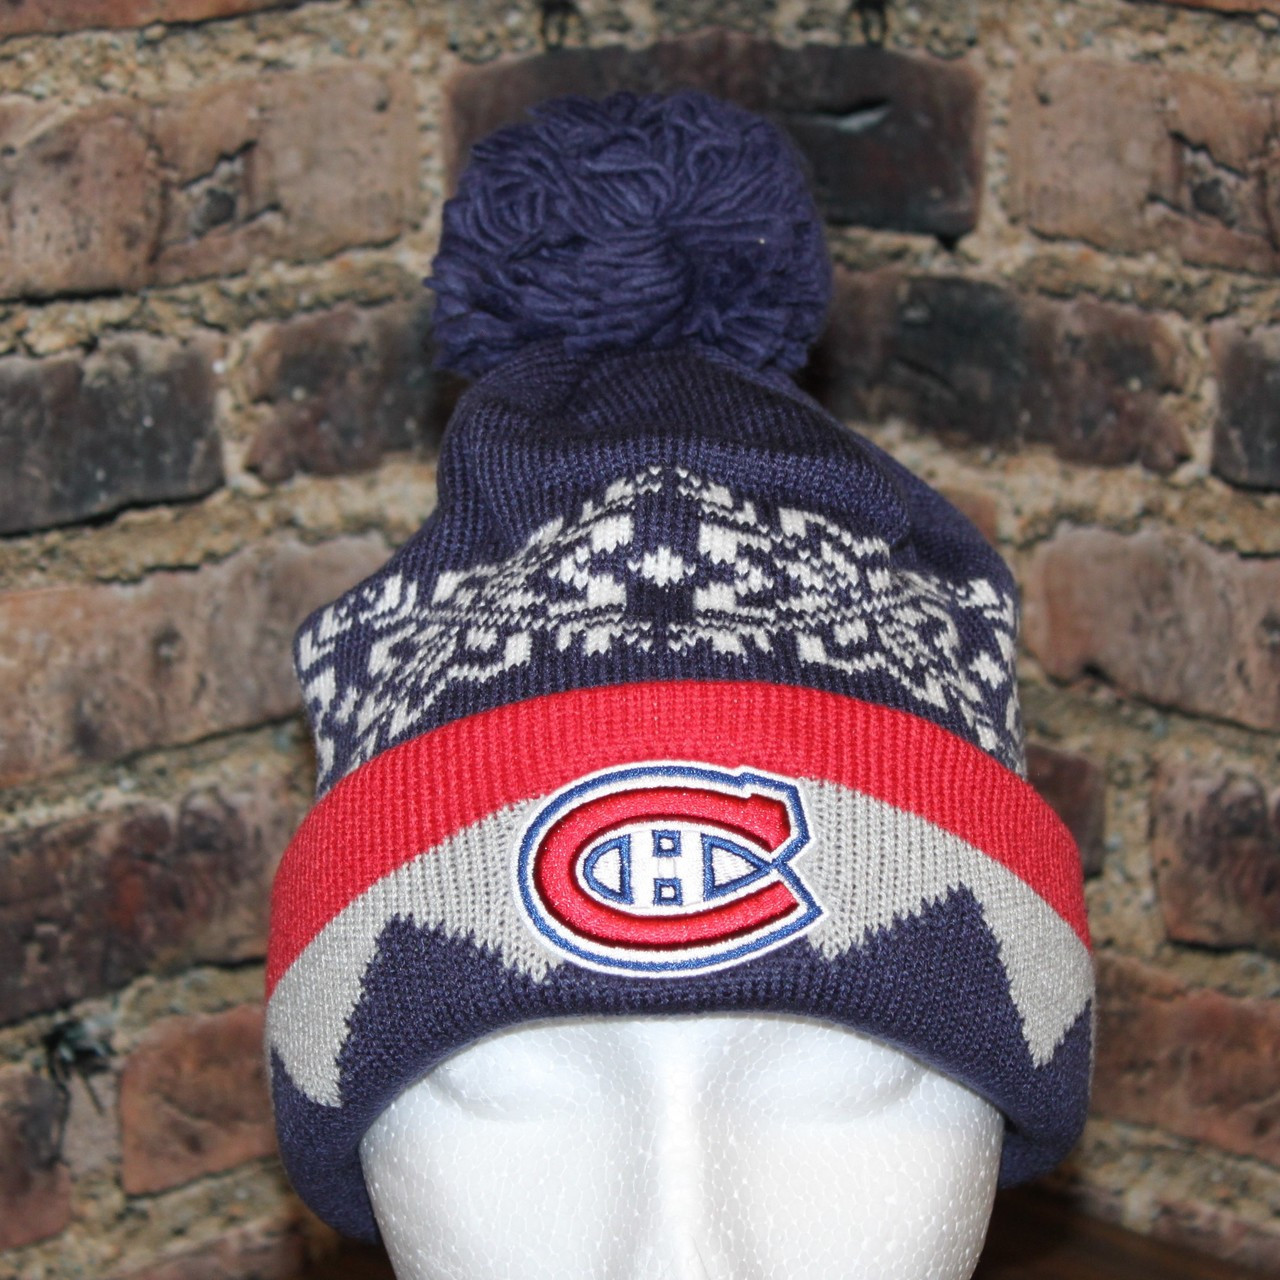 5df2aa741 Montreal Canadiens adidas NHL Snowflake Cuffed Pom Knit Hat. Larger / More  Photos